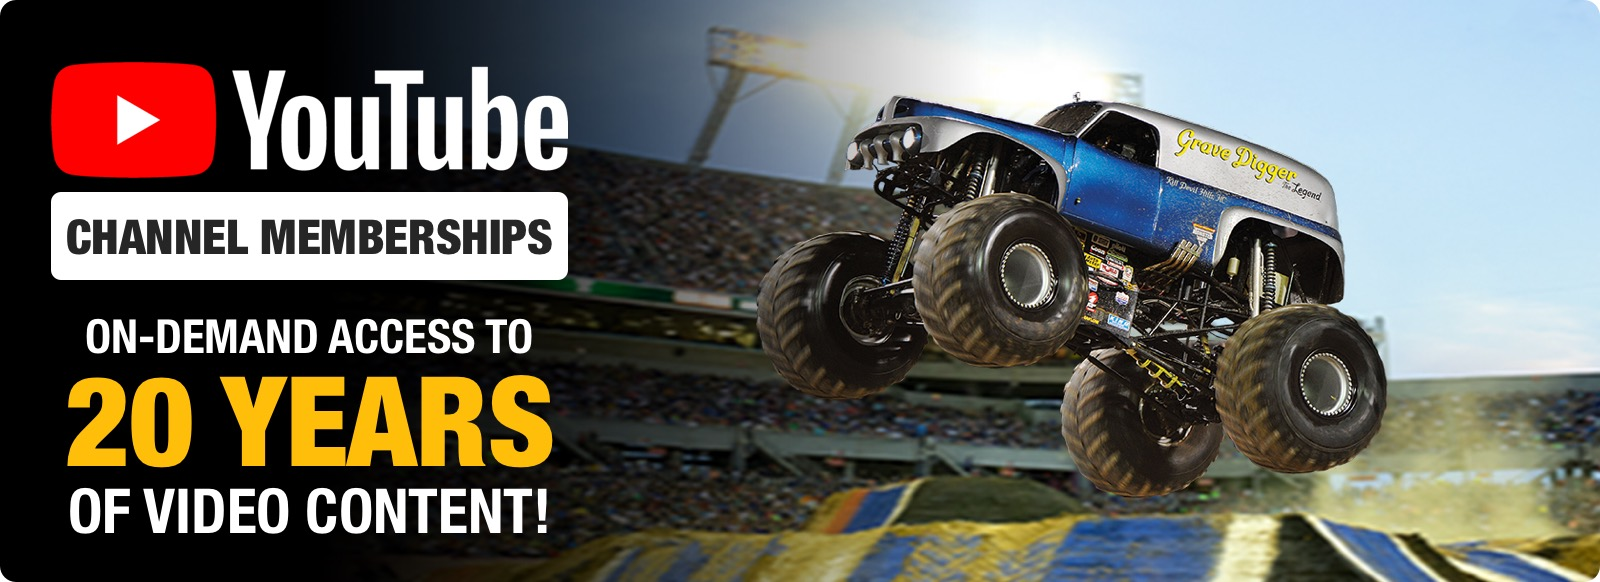 MONSTER JAM YOUTUBE CHANNEL MEMBERSHIPS